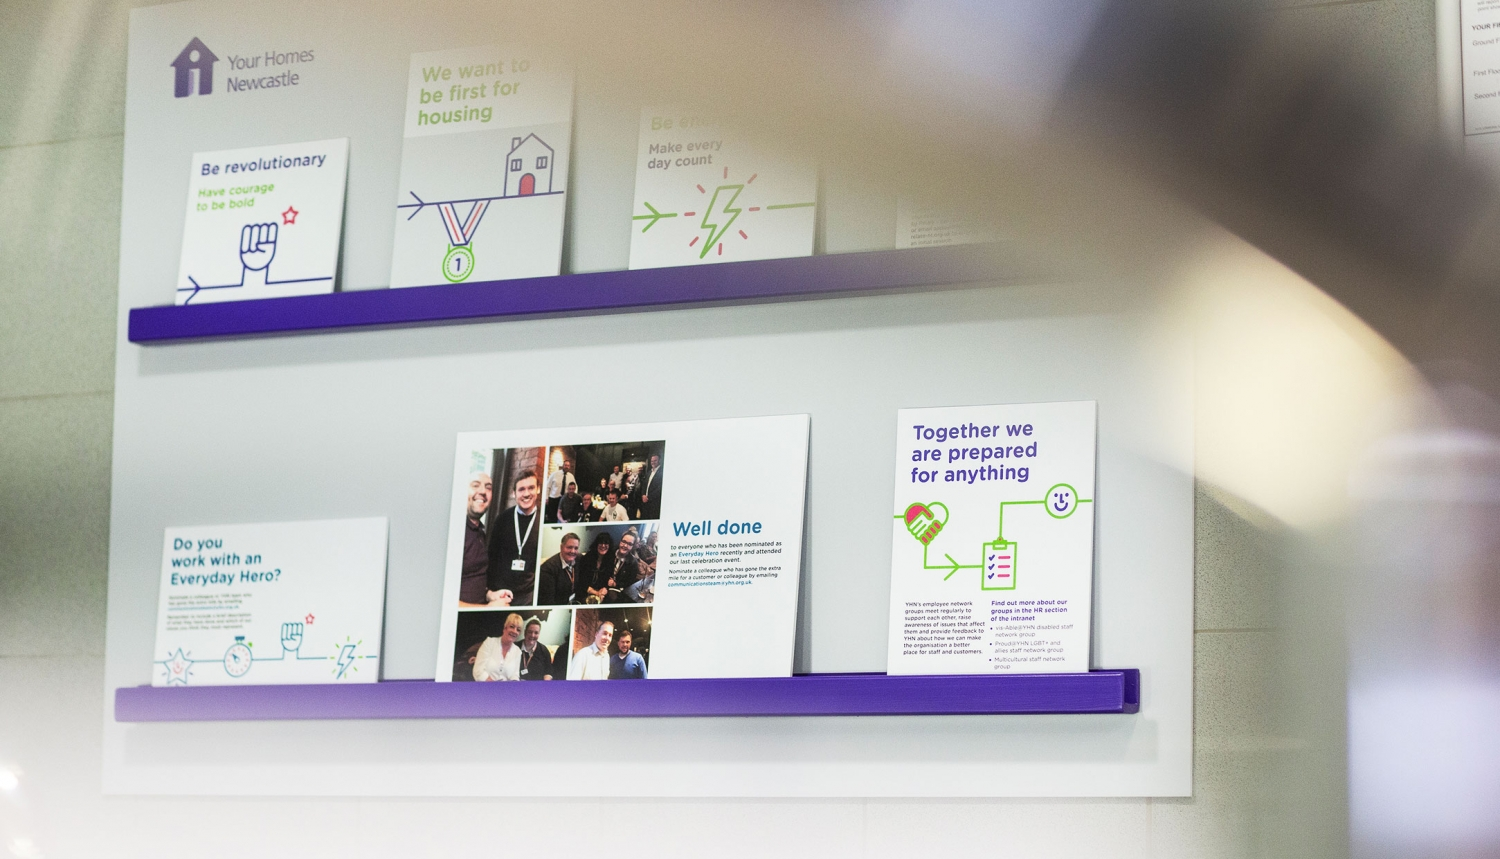 Brand values and office interior wall vinyls by Altogether Creative.